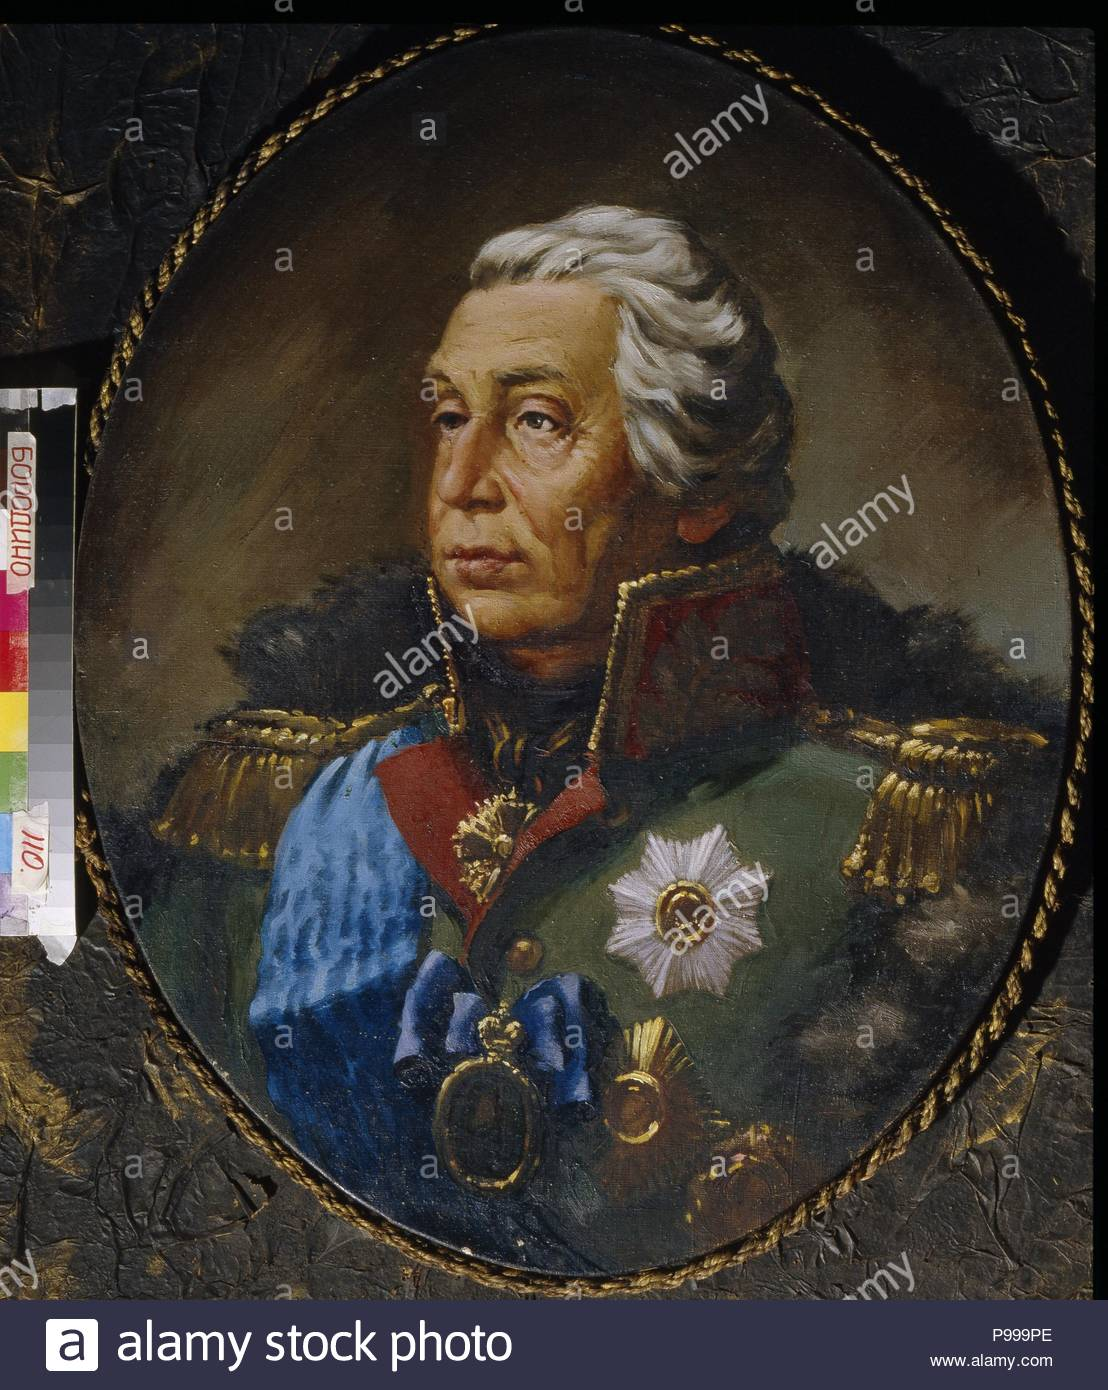 Kutuzov, a brief biography of the Field Marshal General